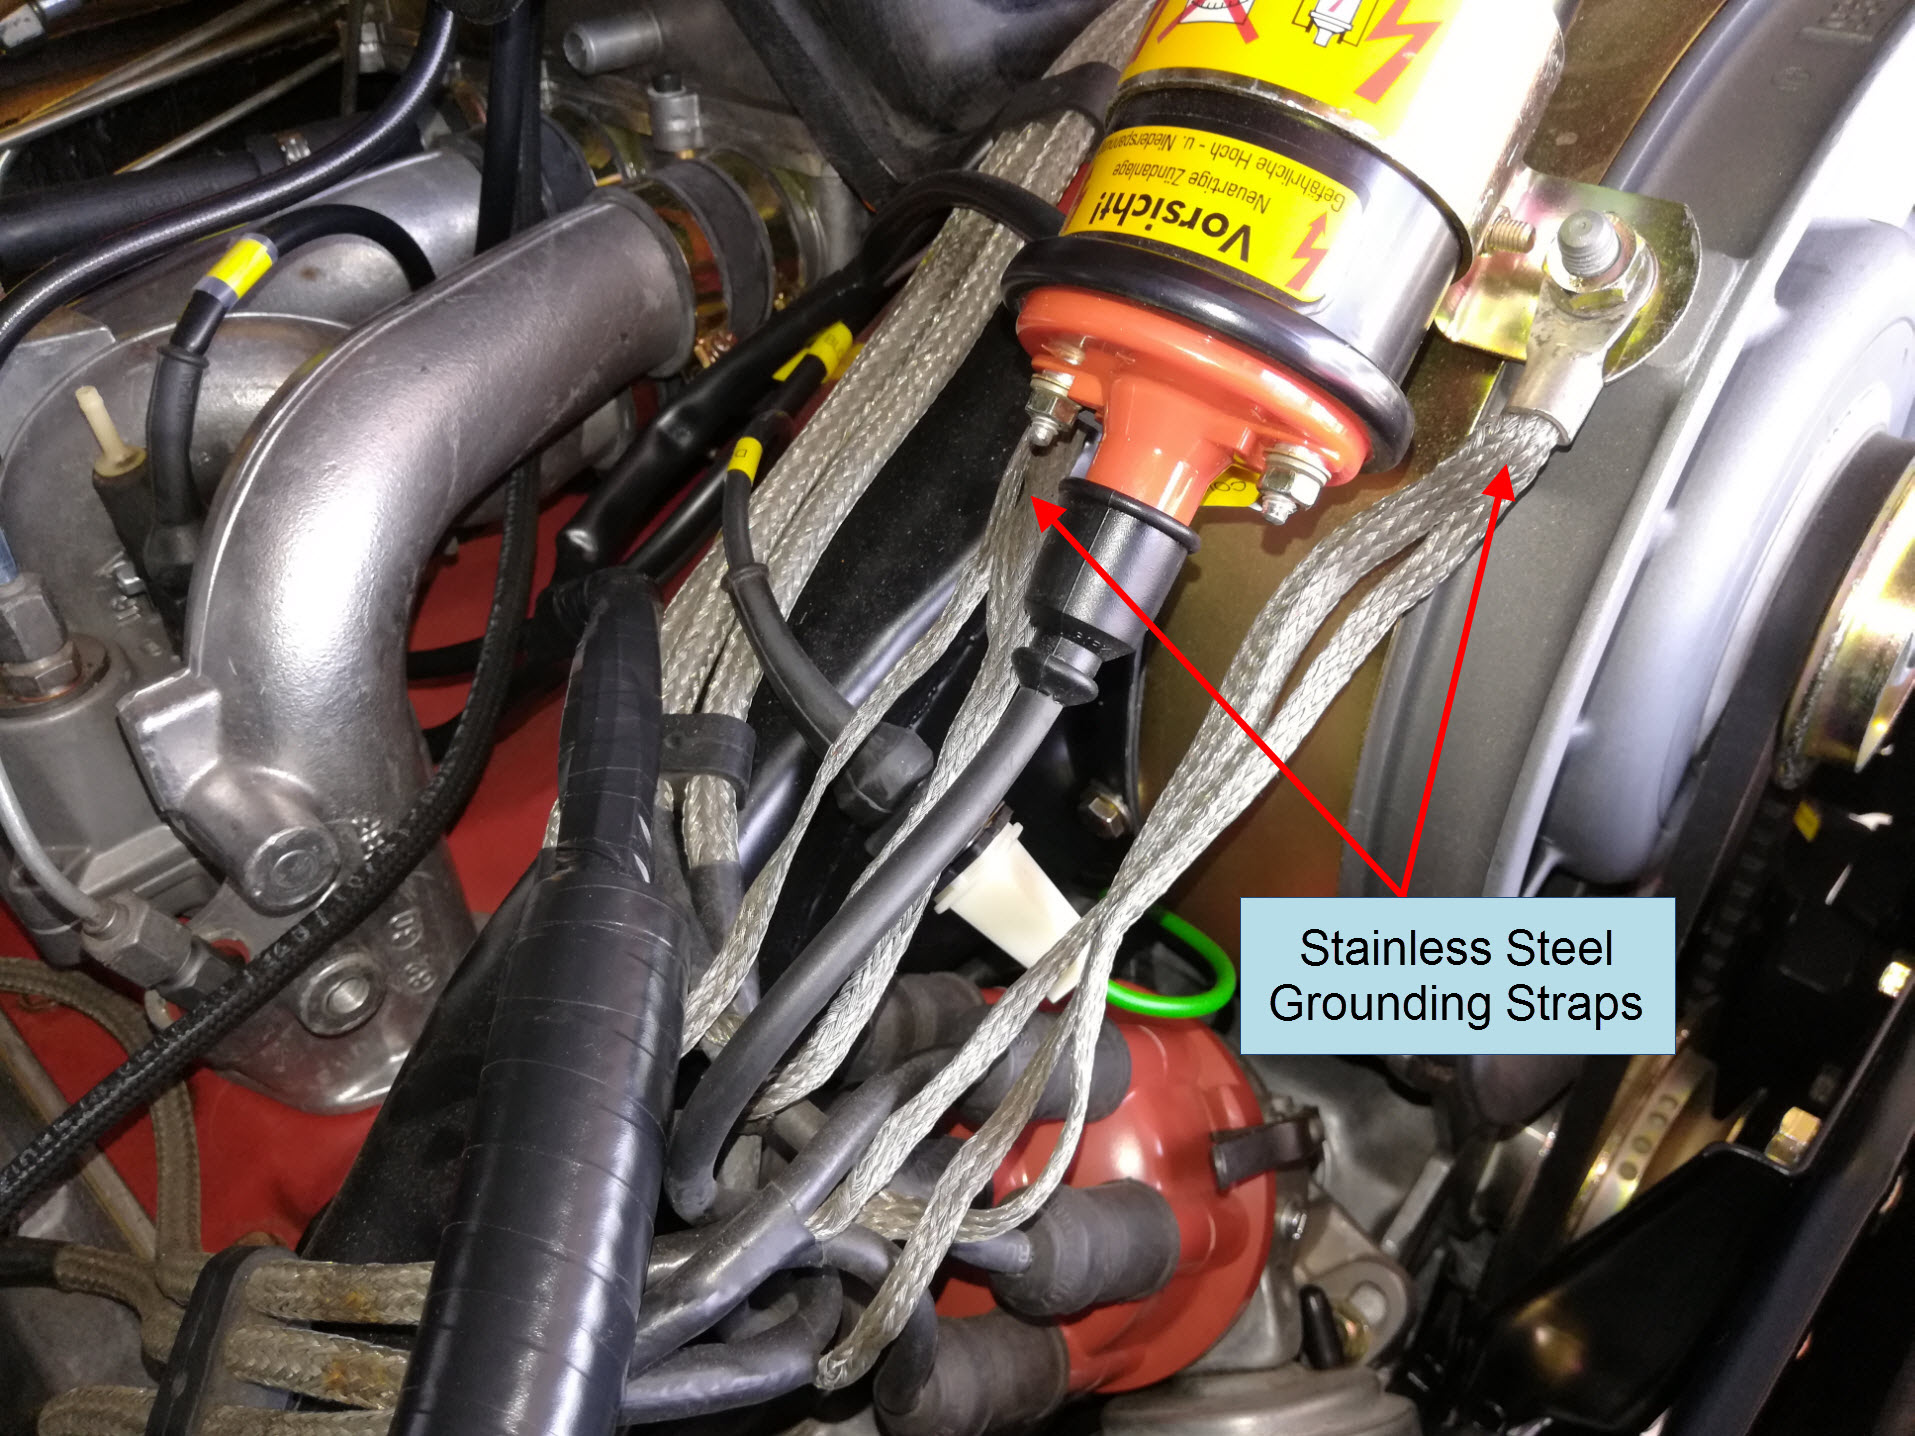 Air-cooled Porsche 911 spark plug wire stainless steel grounding straps.